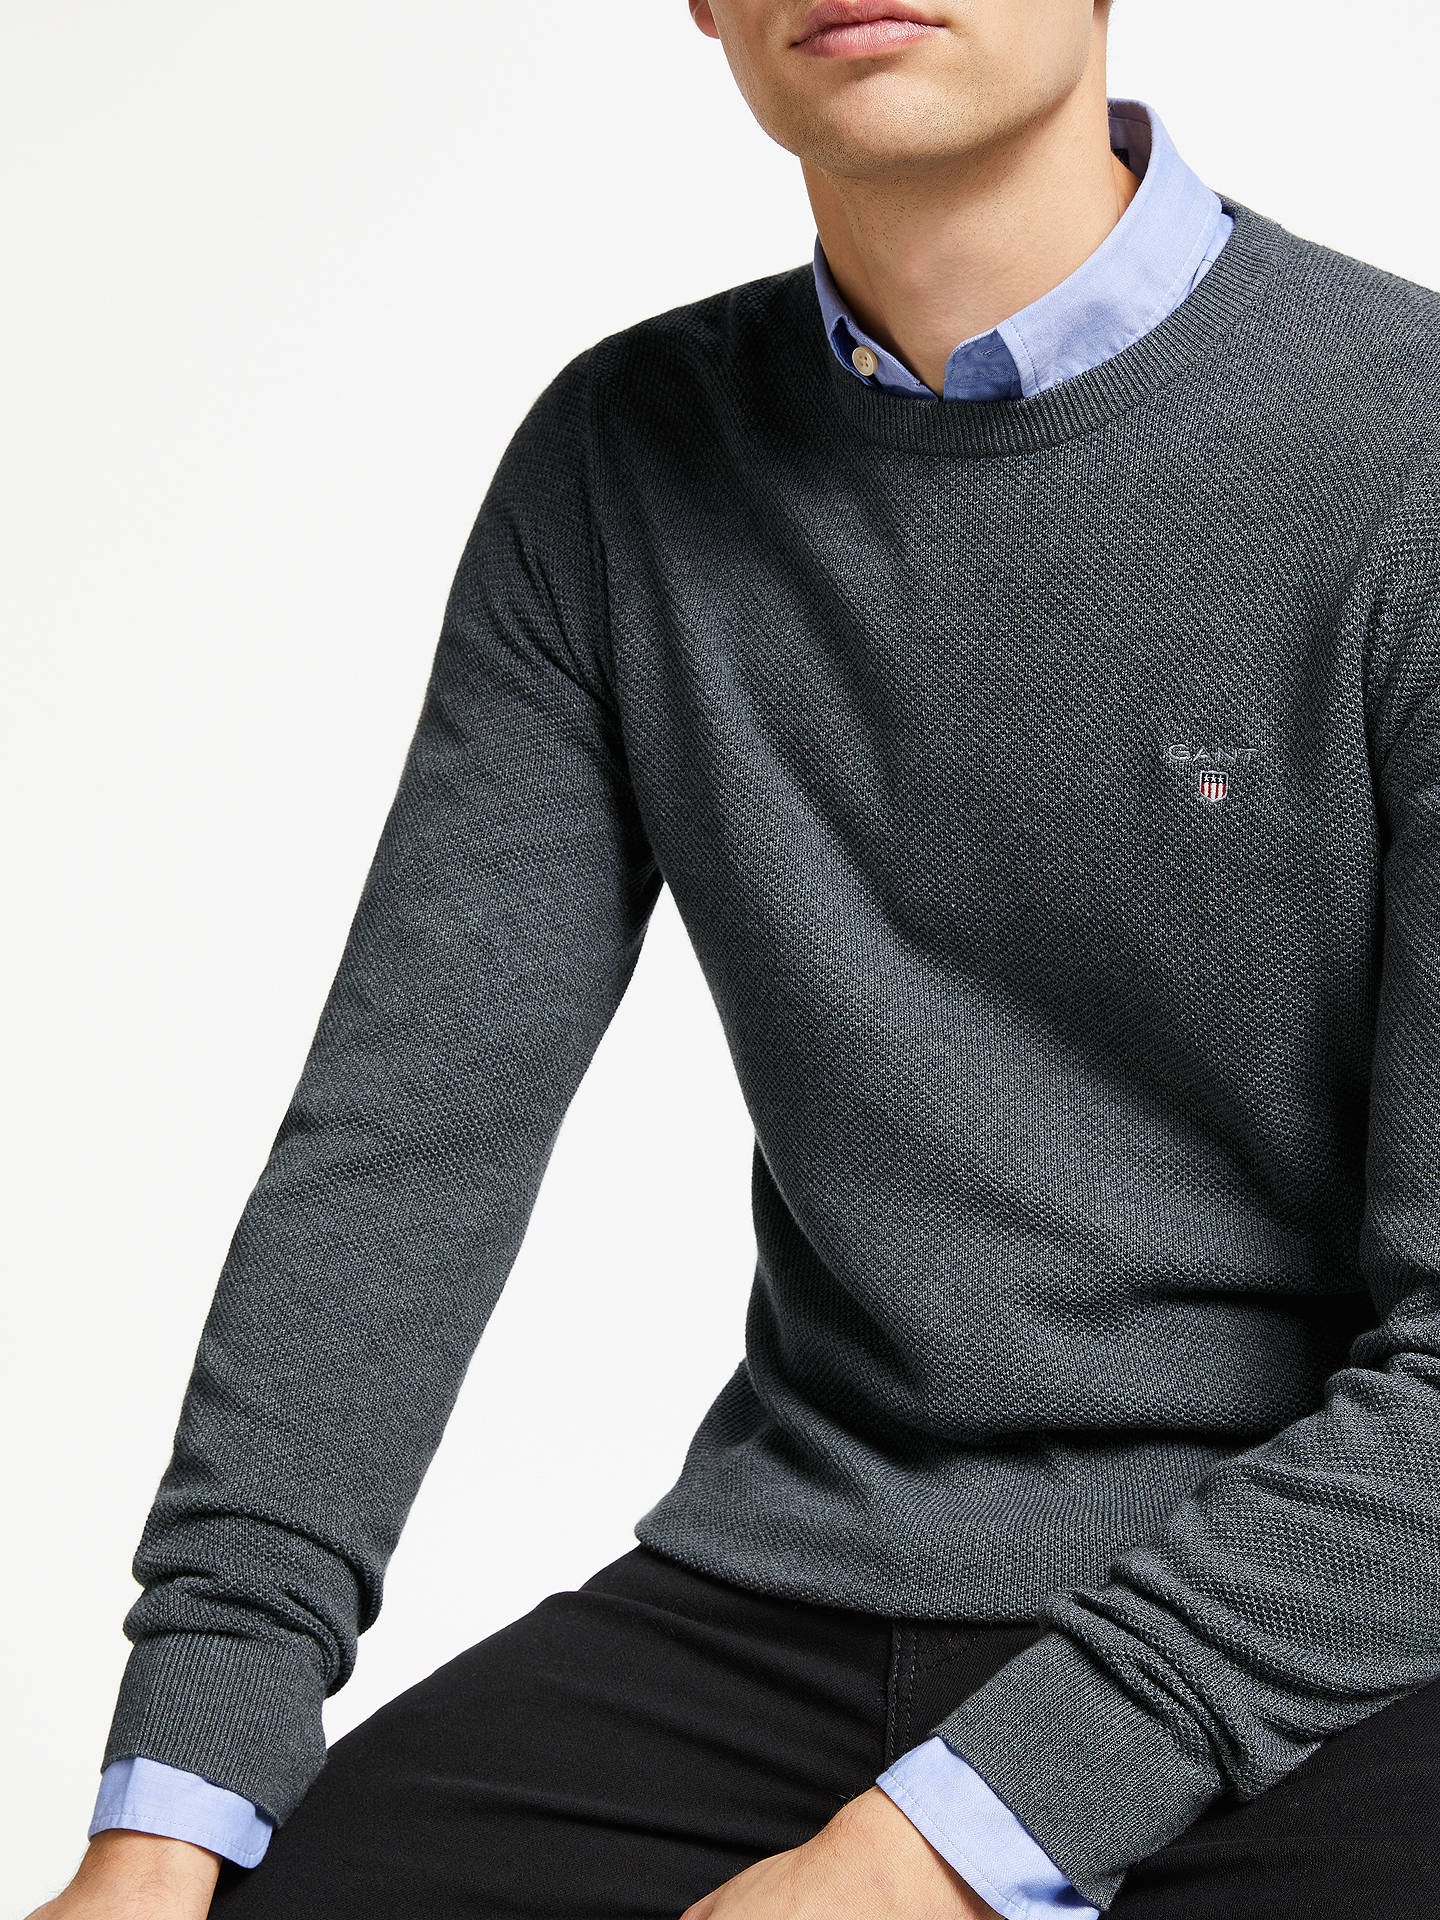 BuyGANT Cotton Pique Crew Neck Jumper, Charcoal, S Online at johnlewis.com